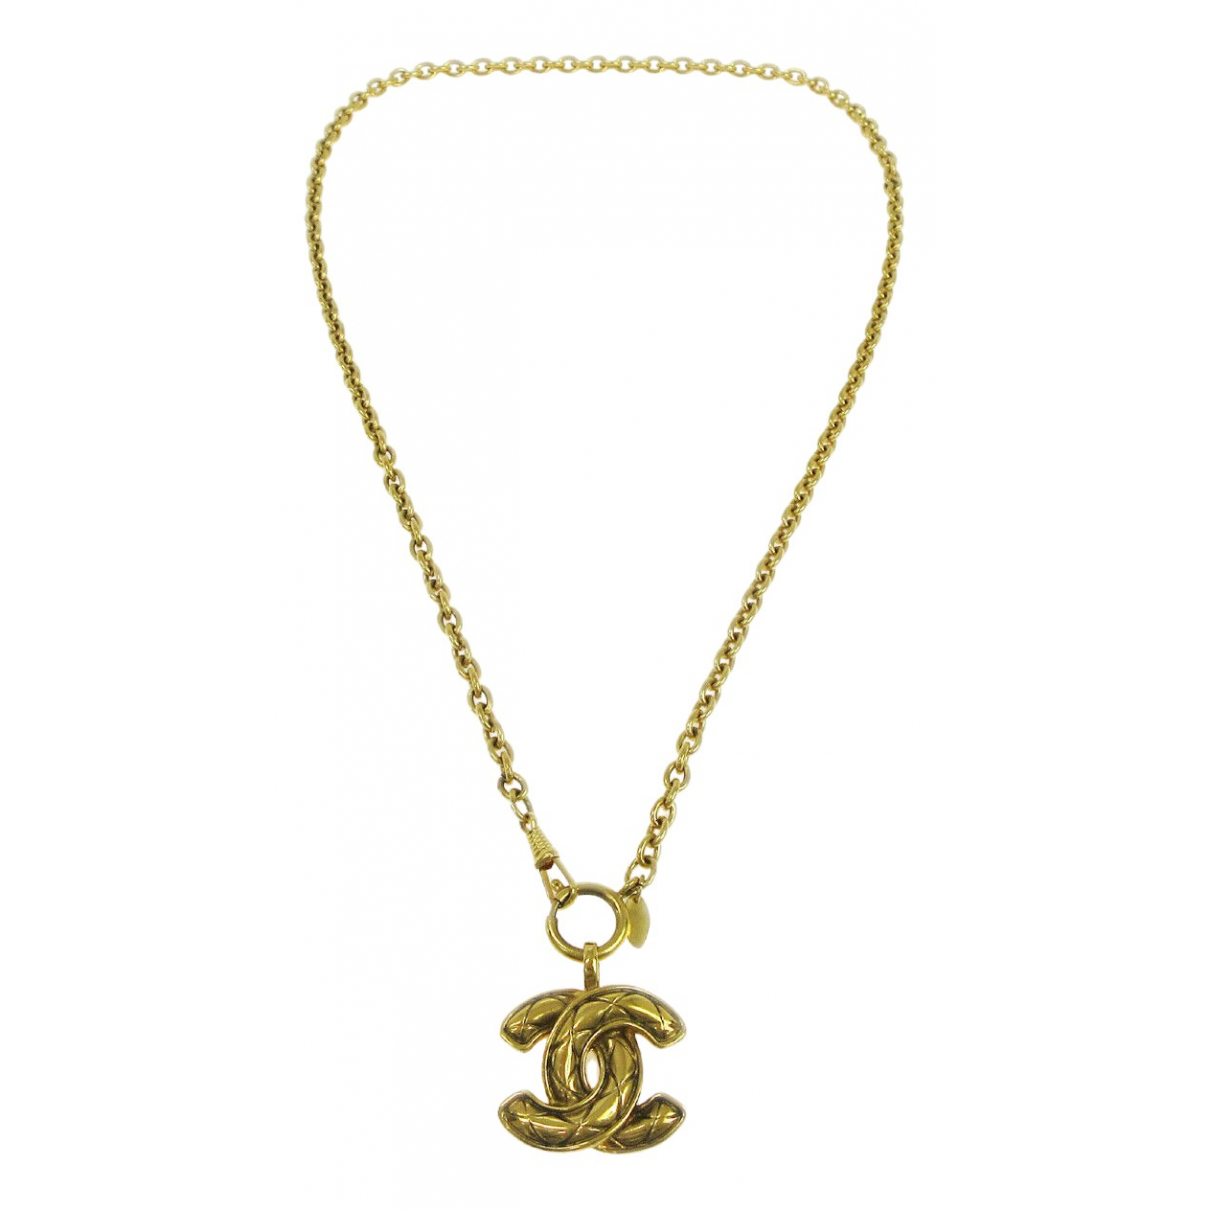 Chanel CC Kette in Metall